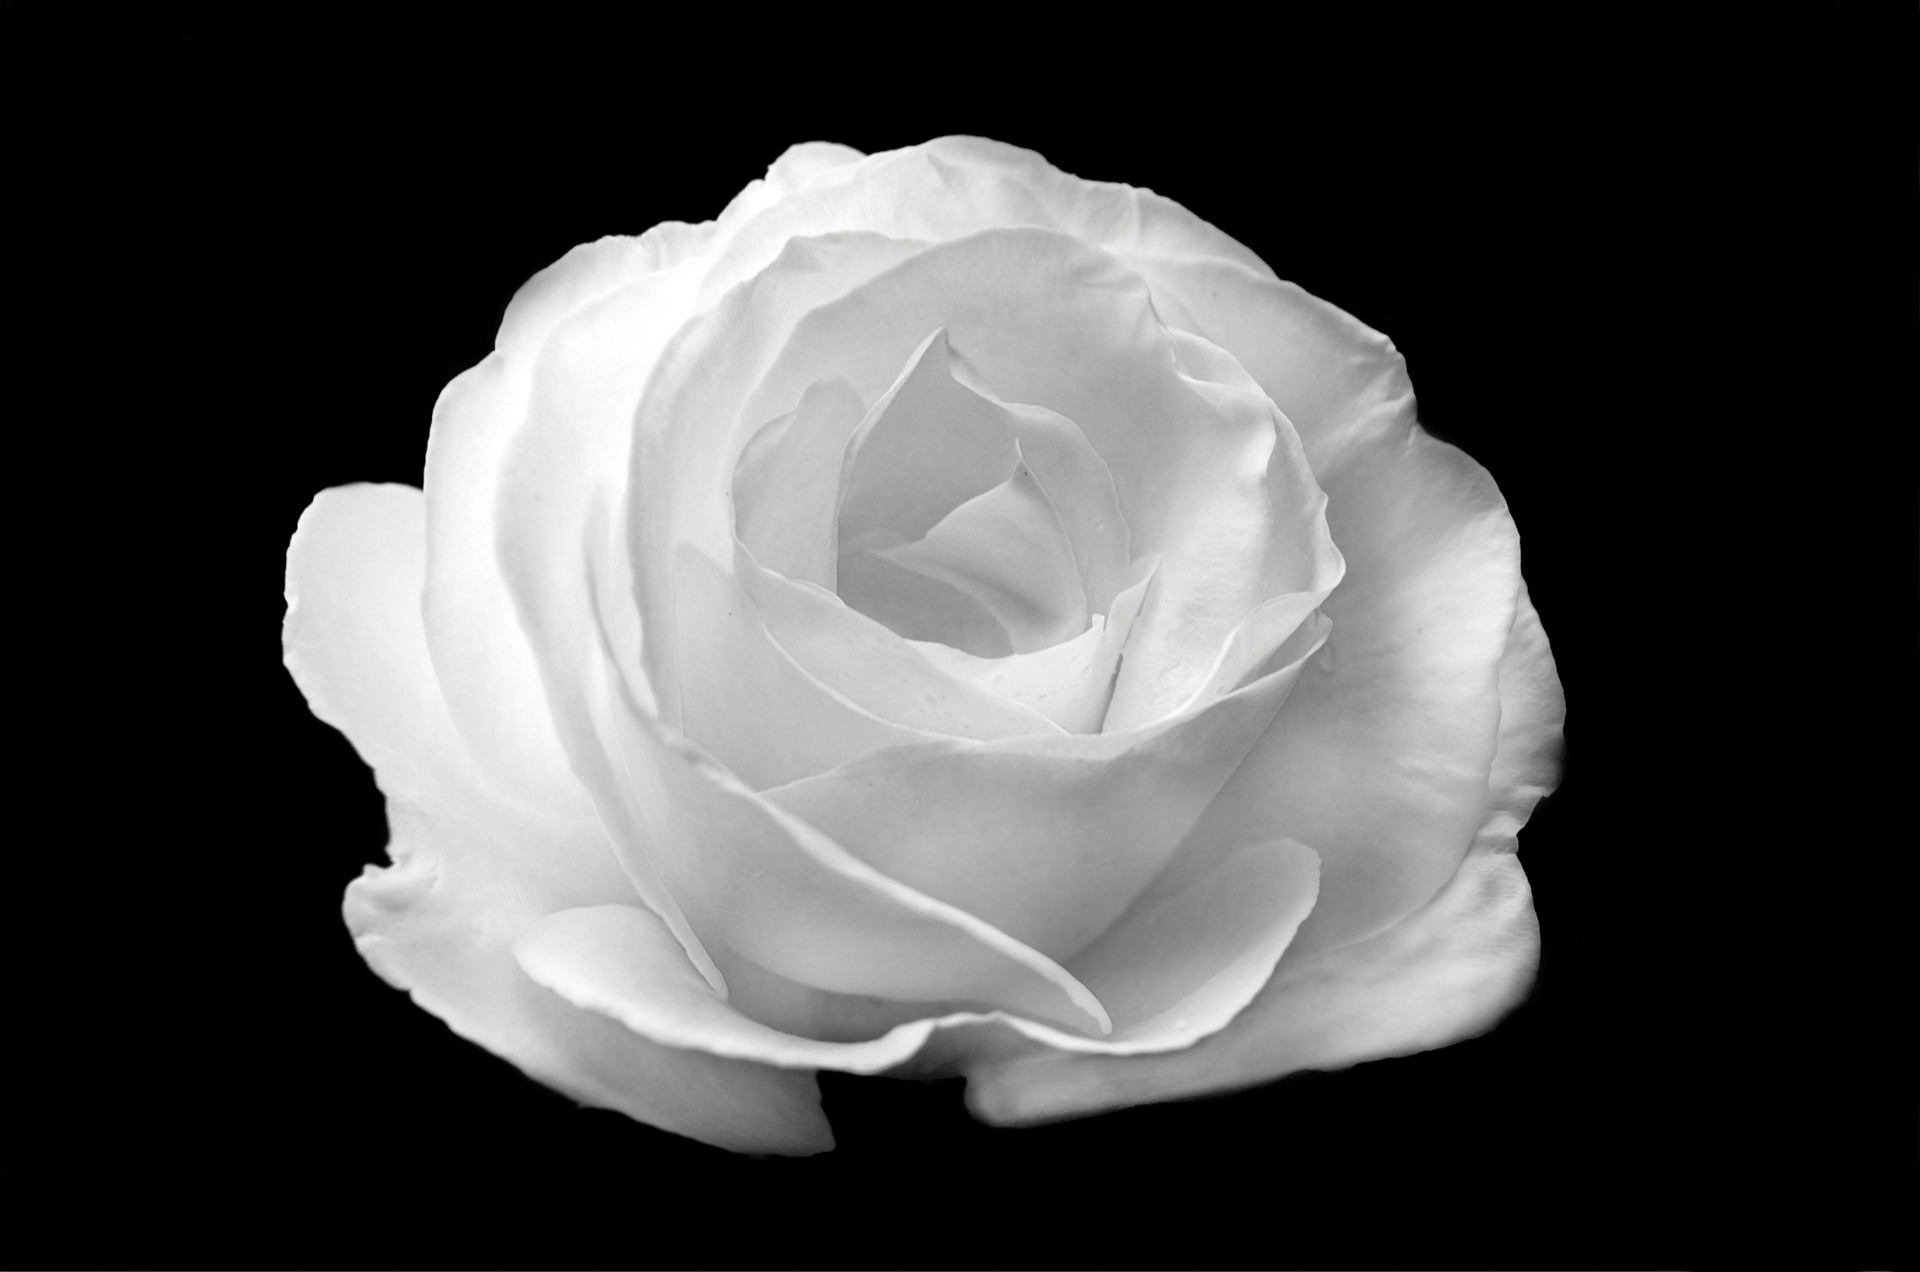 Black and White Rose Wallpaper 61+ images